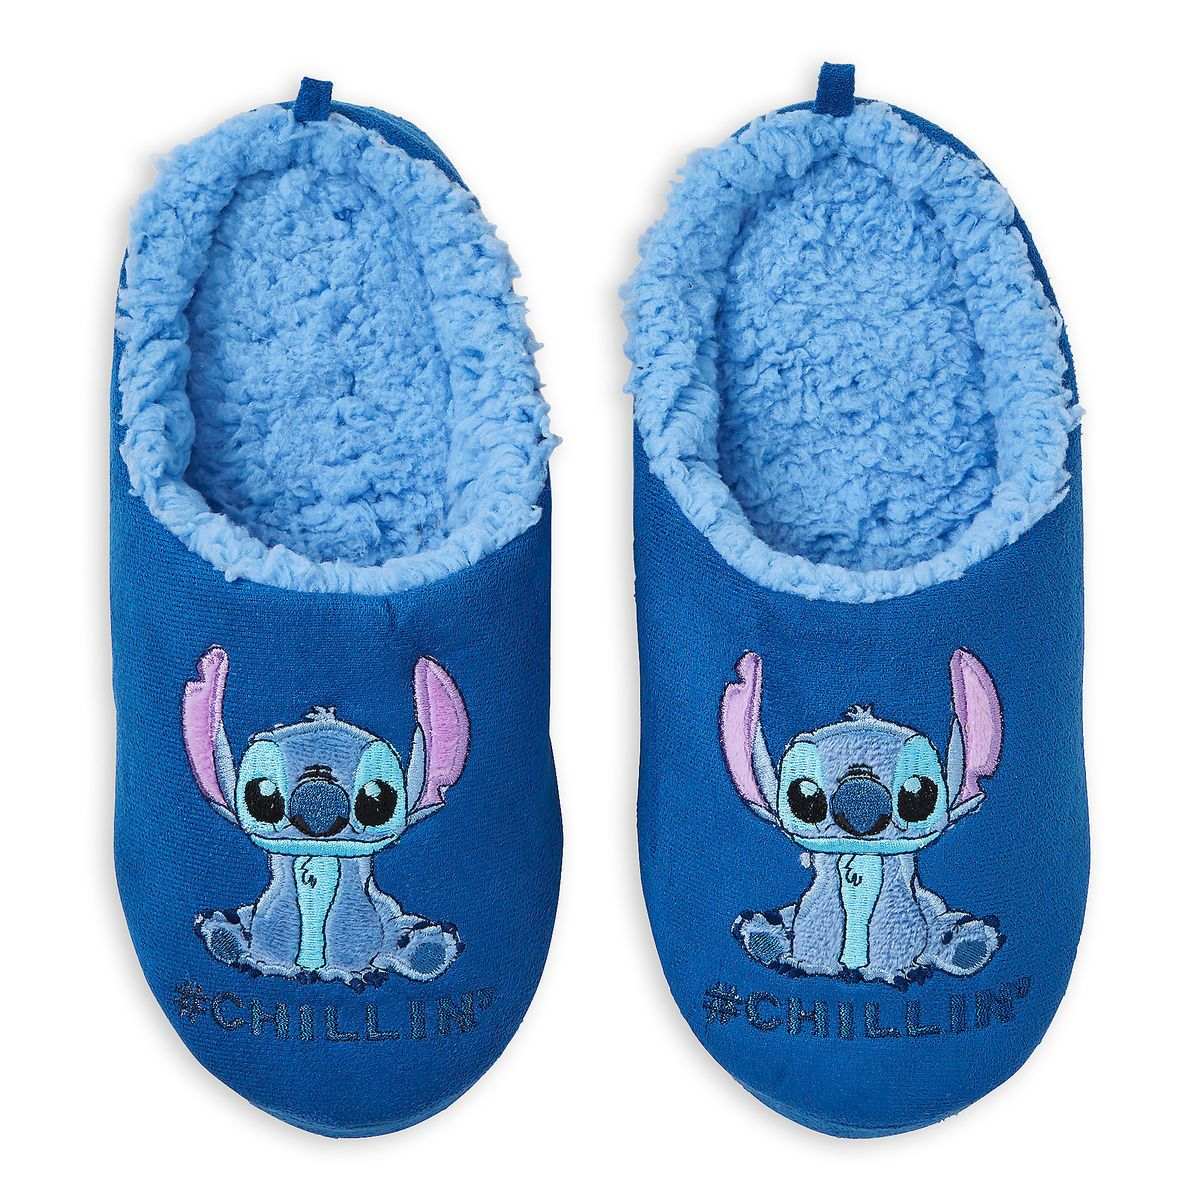 Lelo and stitch, Disney slippers